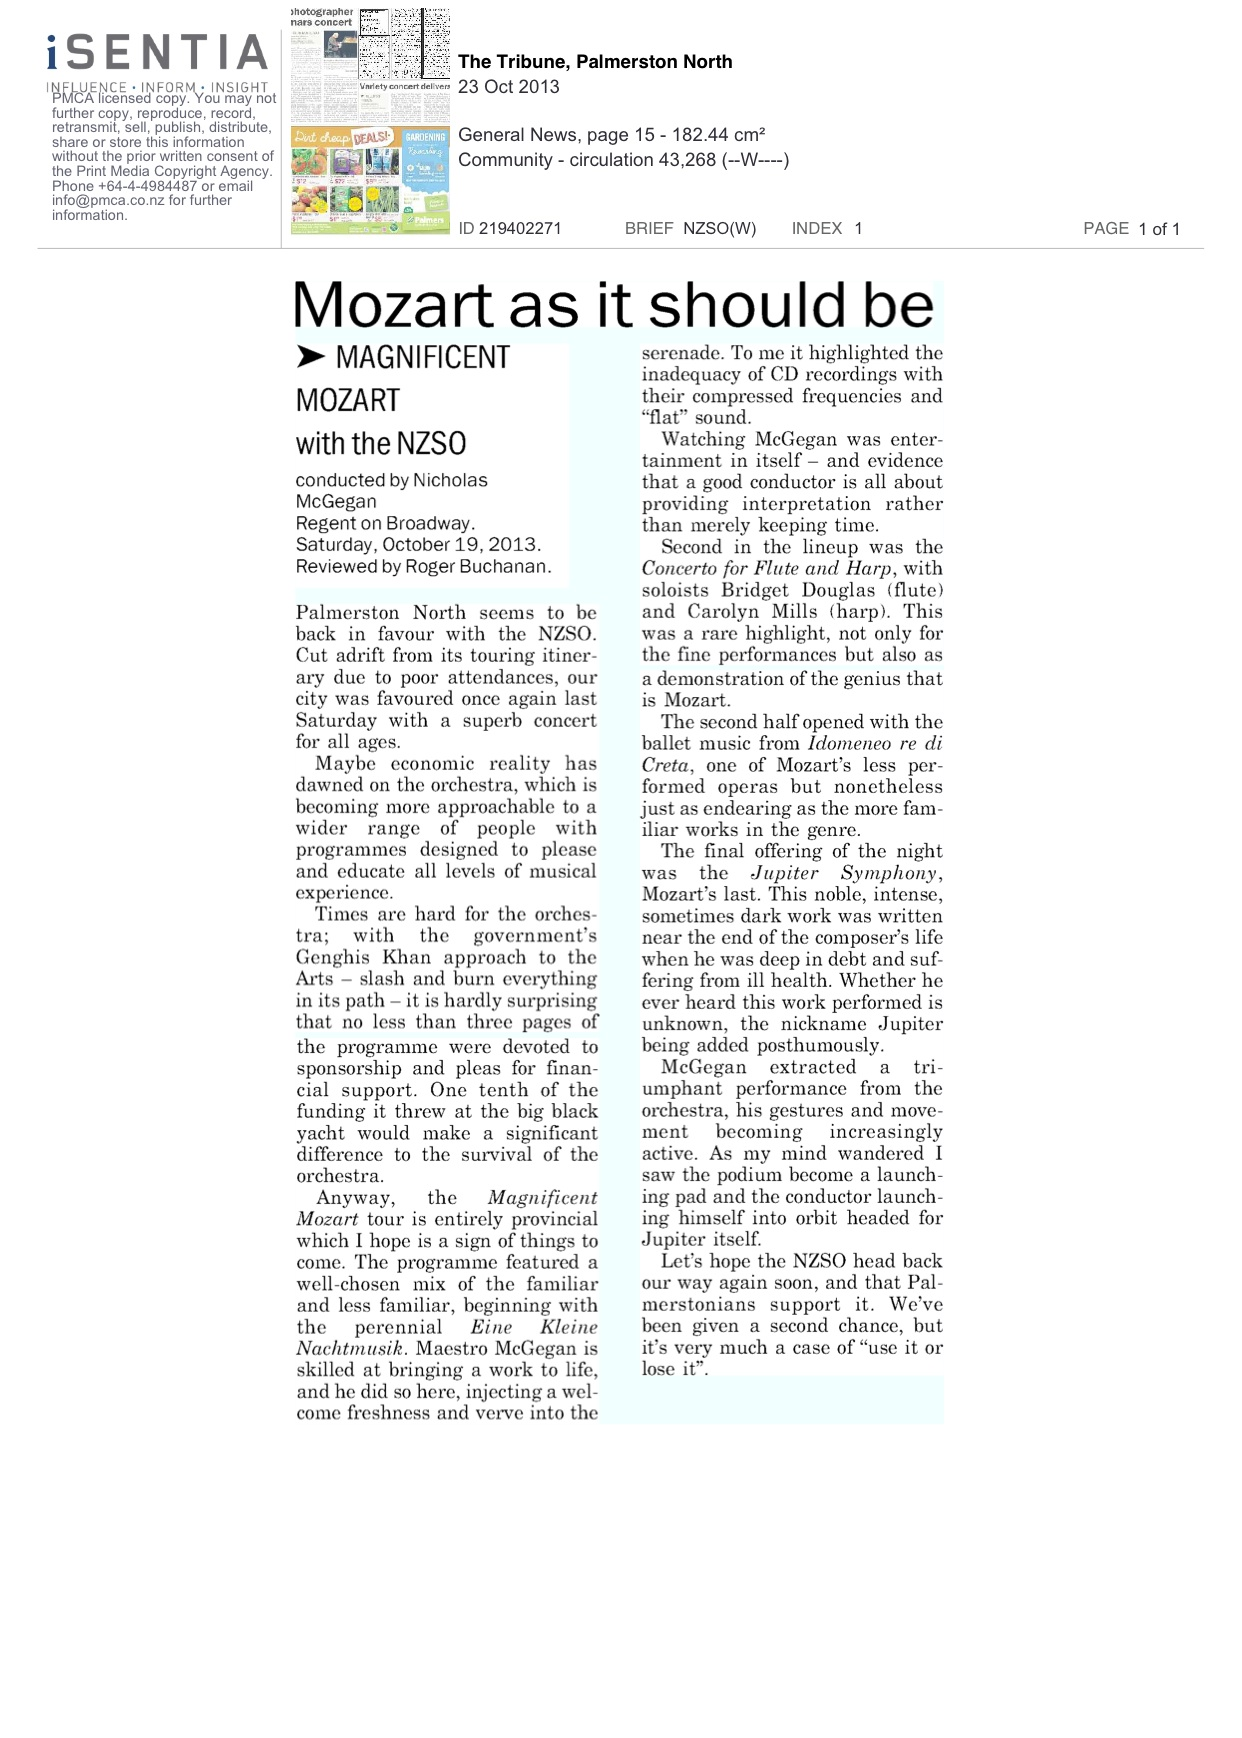 The-Tribune.PalmerstonNorth.Review.MagMozart.23.10.13